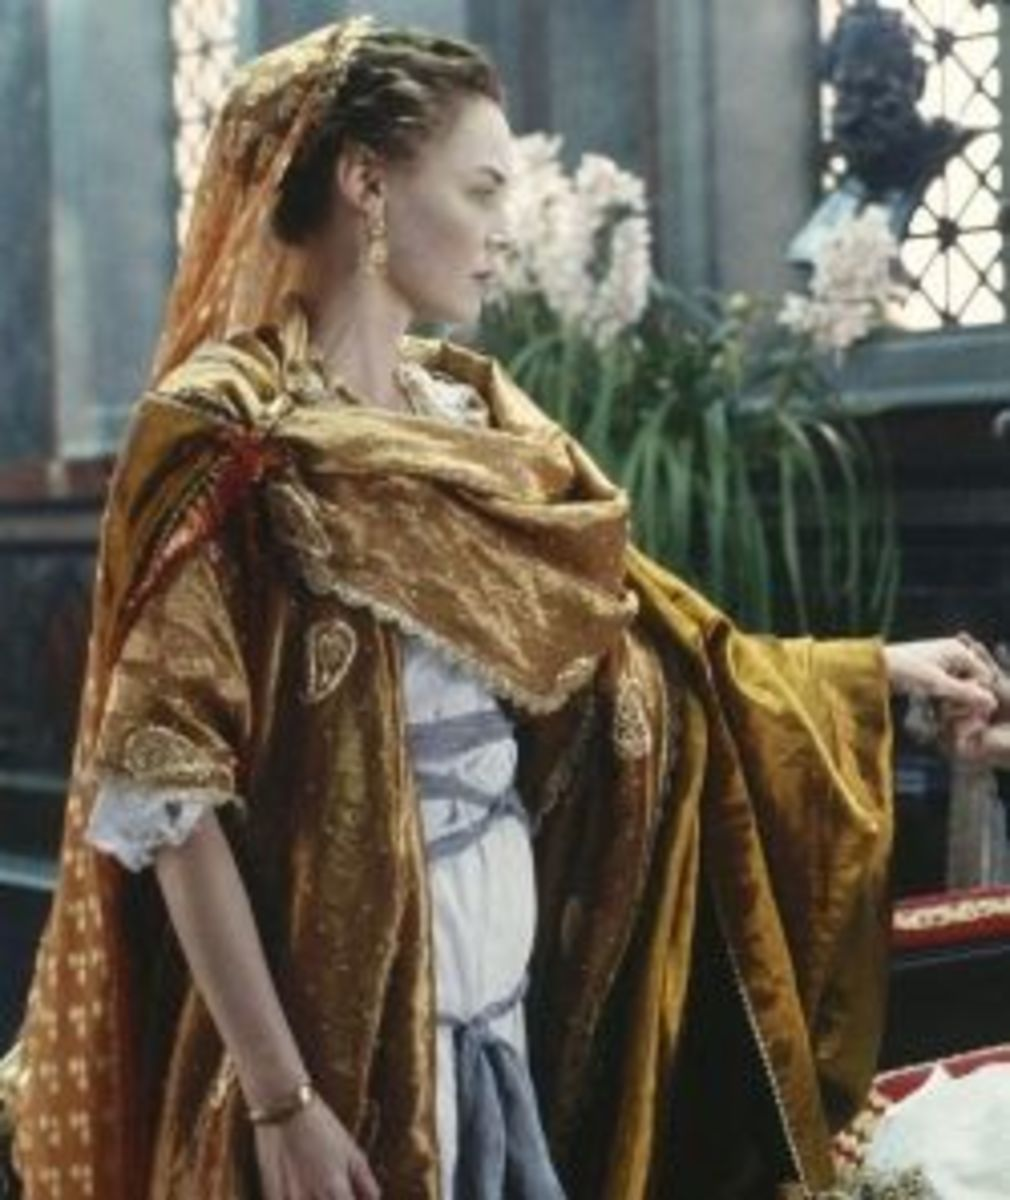 Connie Nielsen as Lucilla from Gladiator